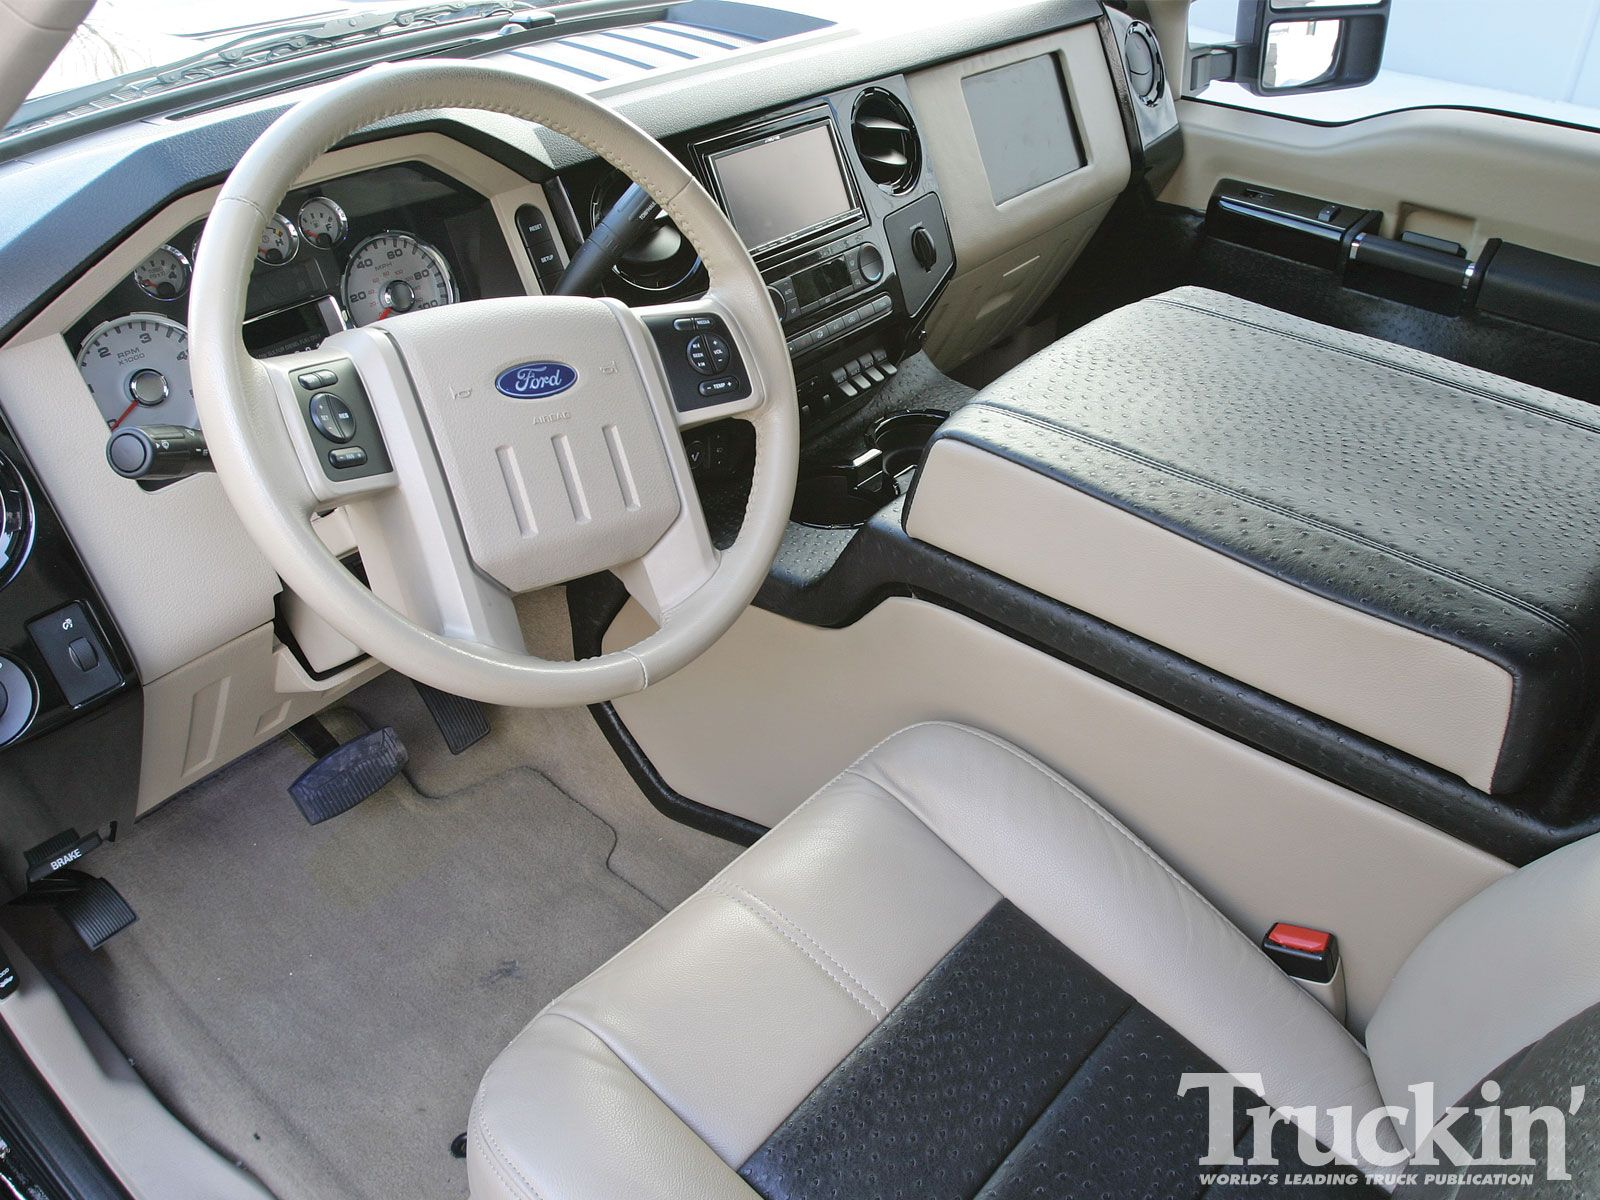 2008 Ford F250 Interior Accessories 1985 Ford F250 Interior 4 Wheels Pinterest Ford